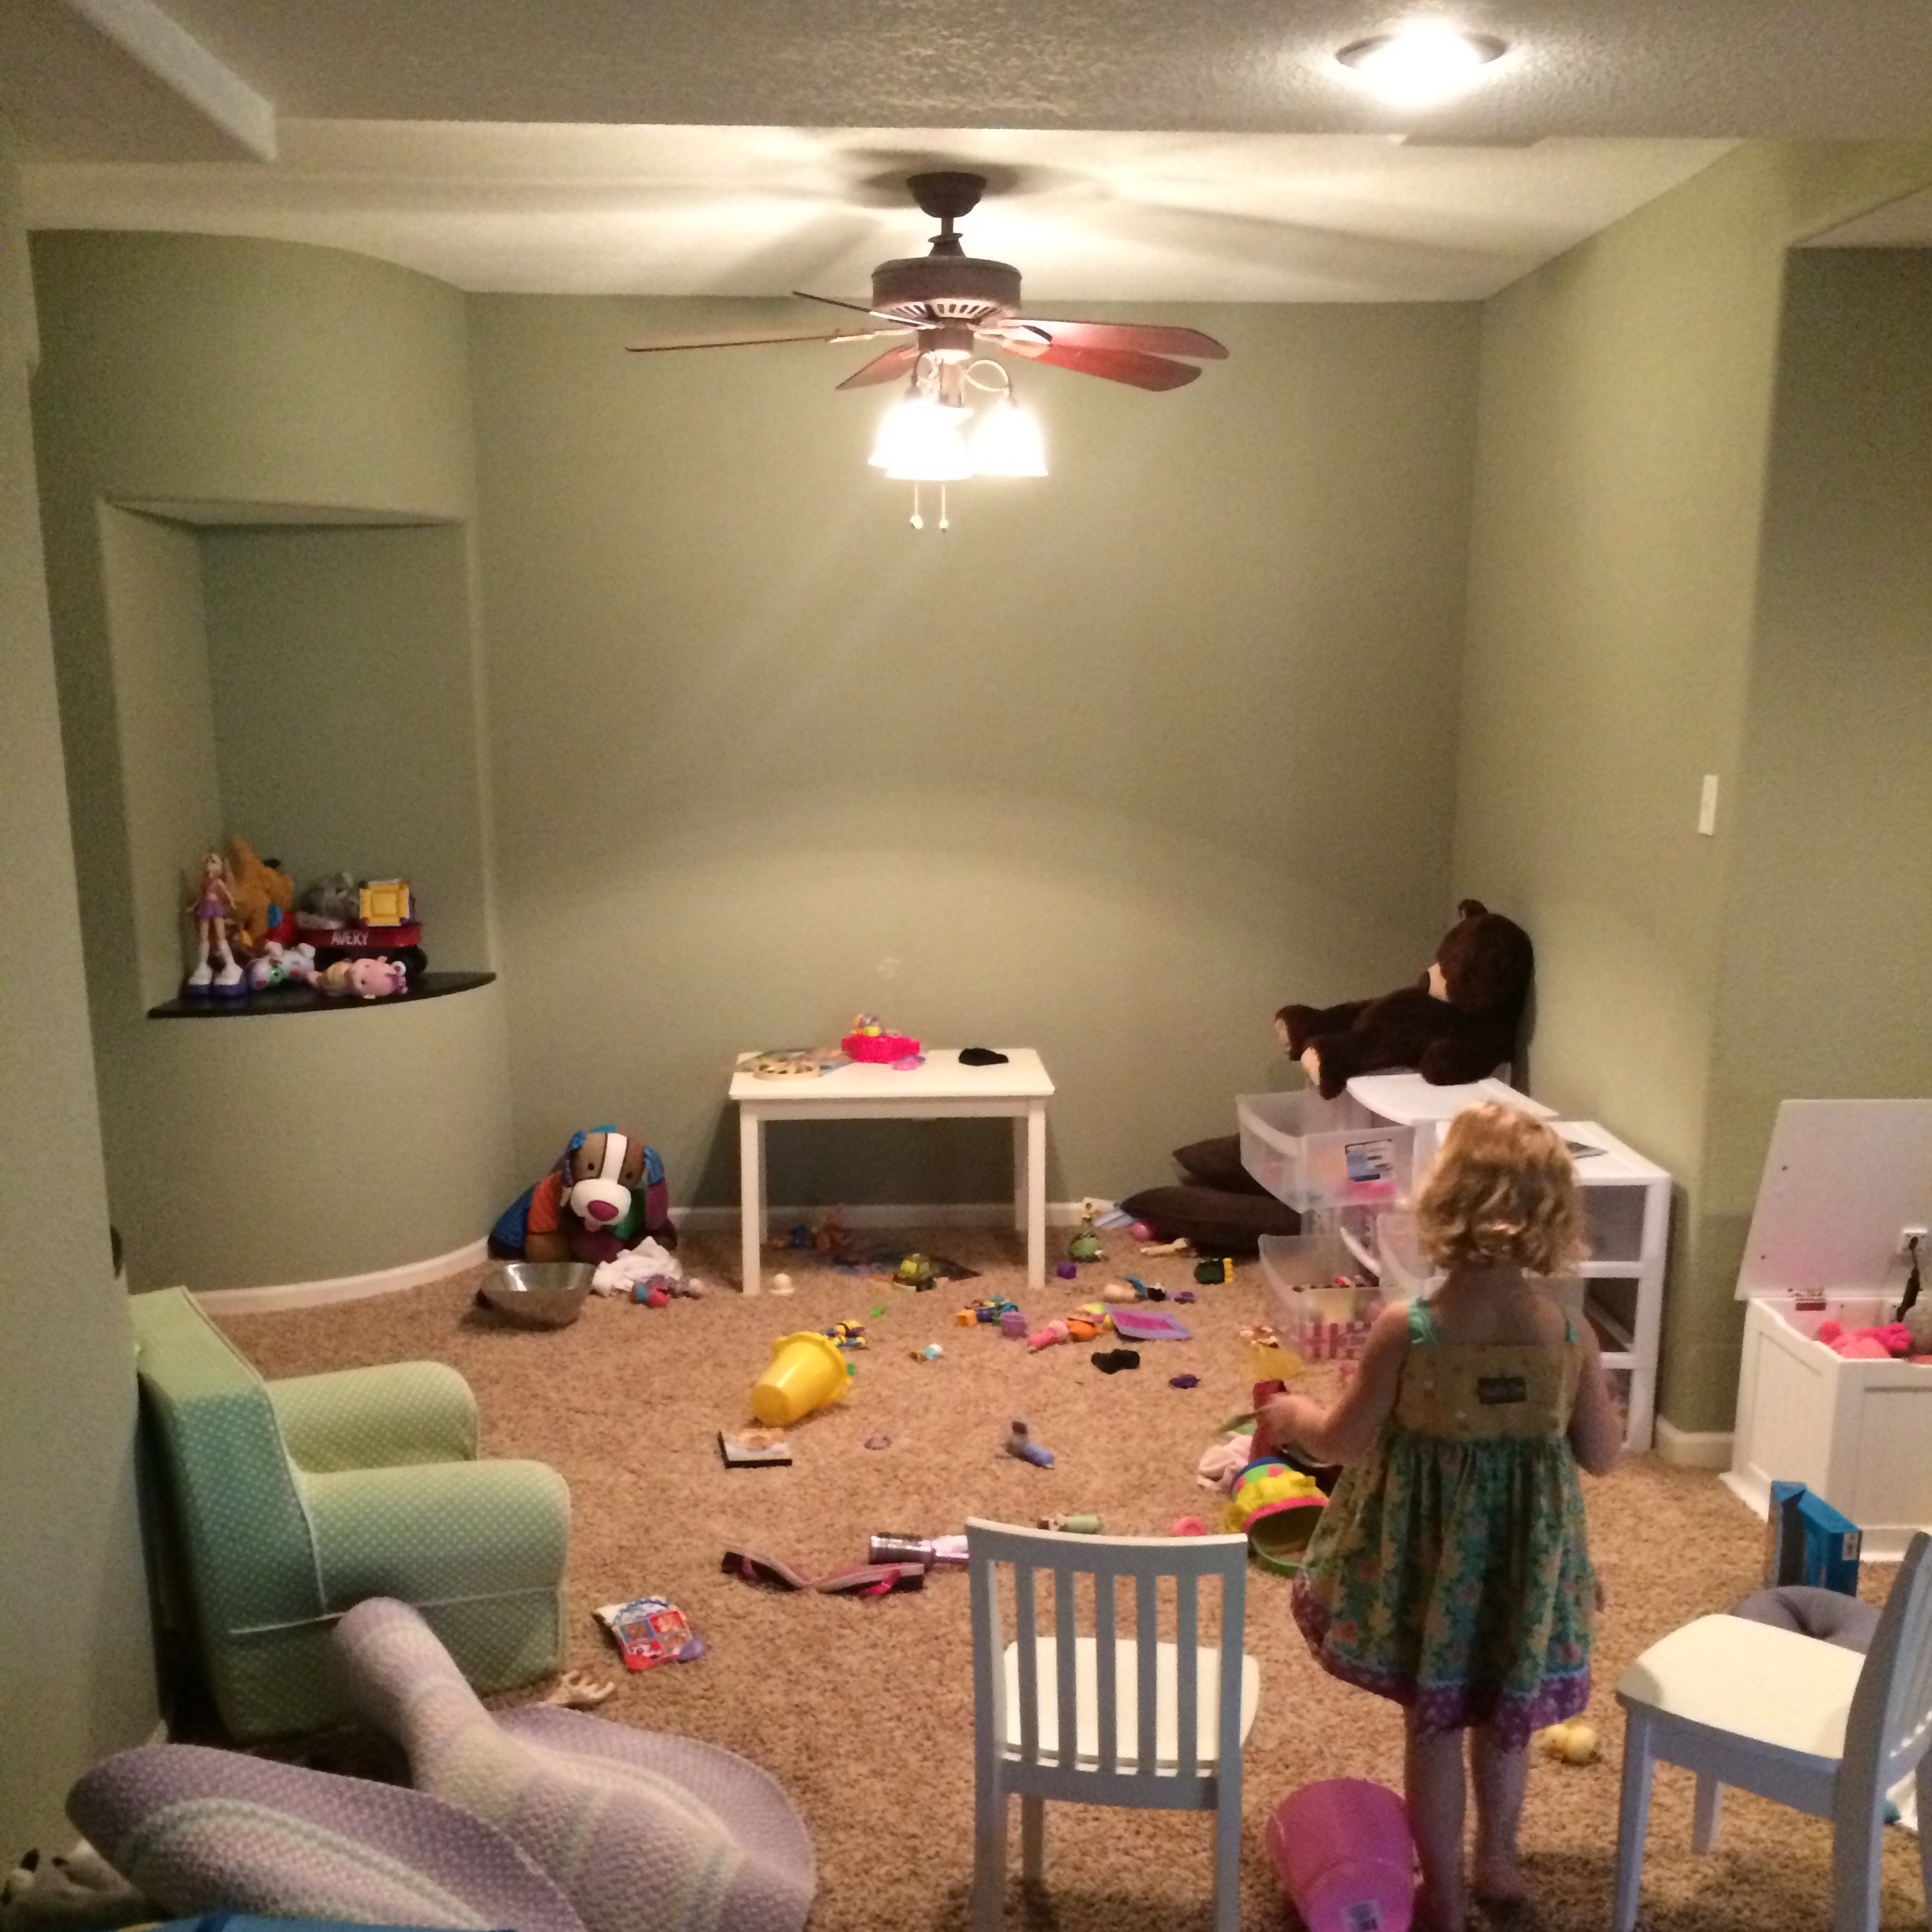 Playroom NOW: